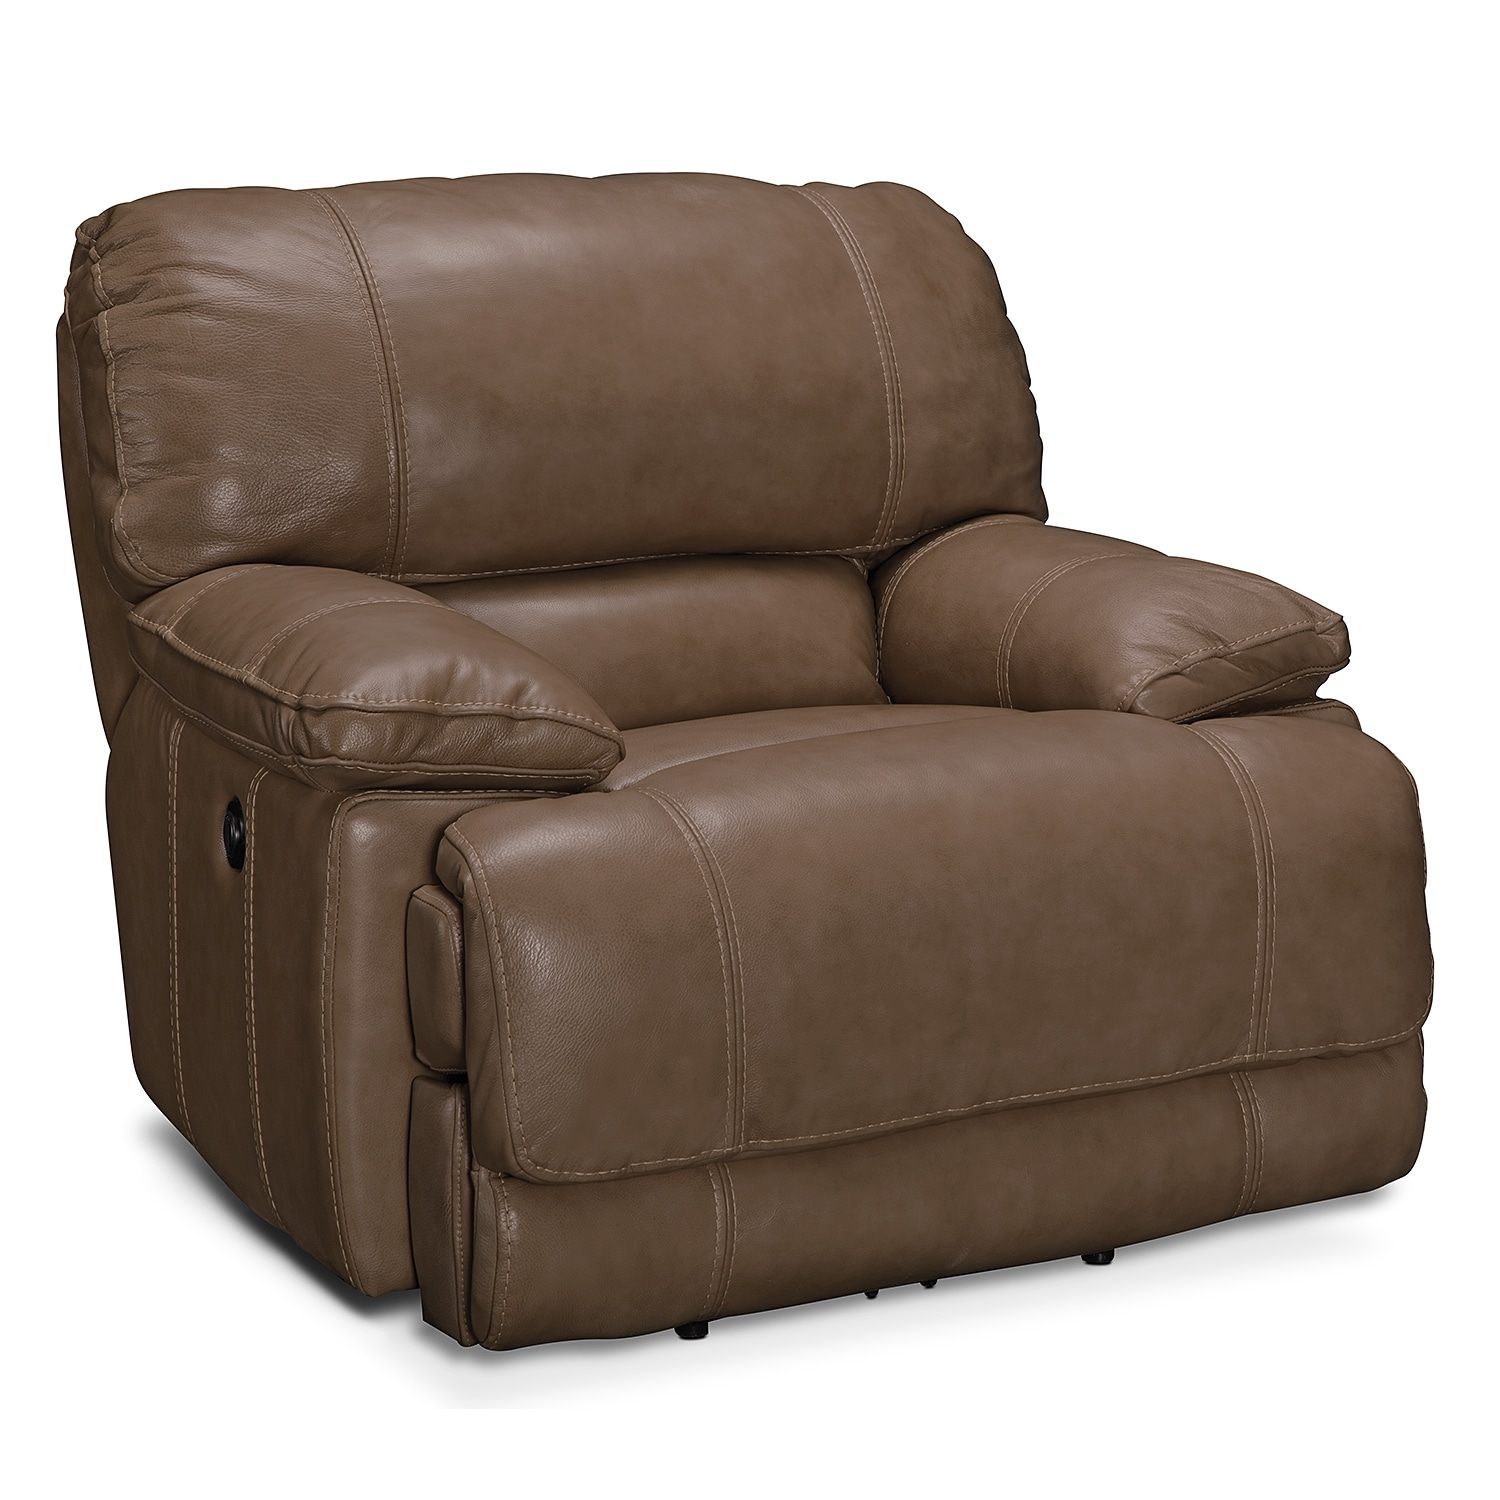 Living Room Furniture - St. Malo II Power Recliner